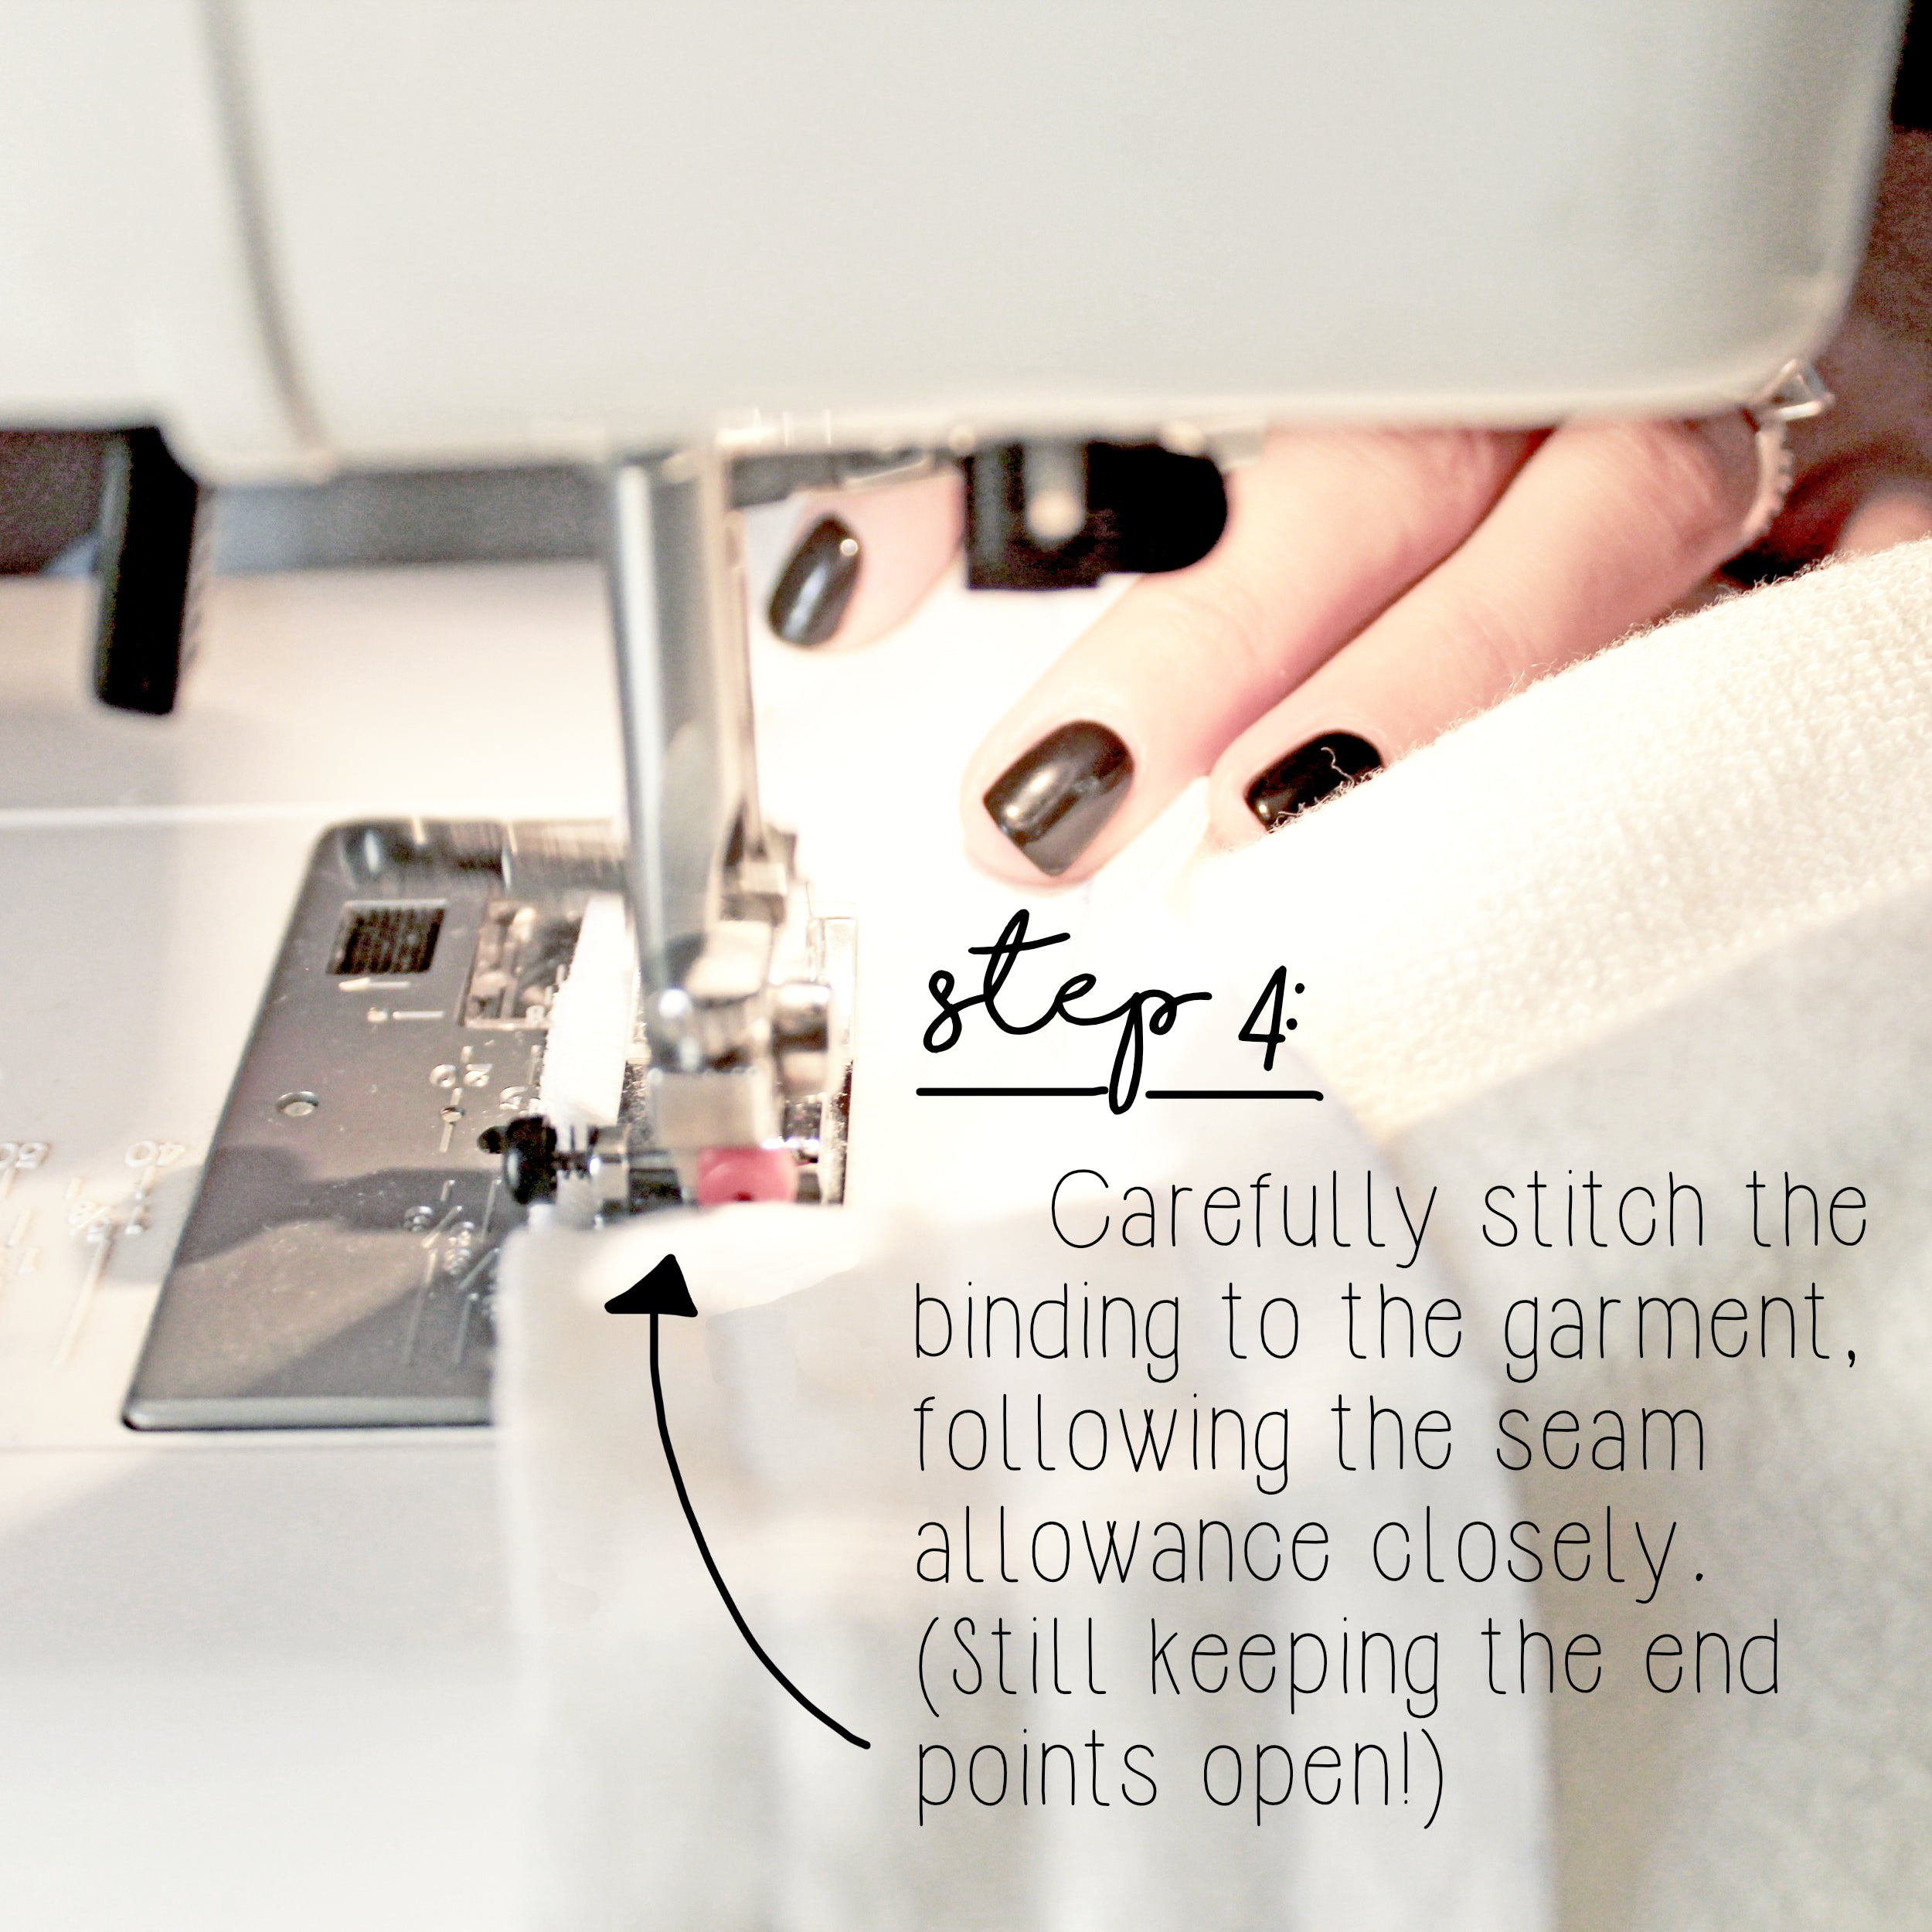 How To Sew A Knit Seam Binding Sewing Tutorial: Step 4